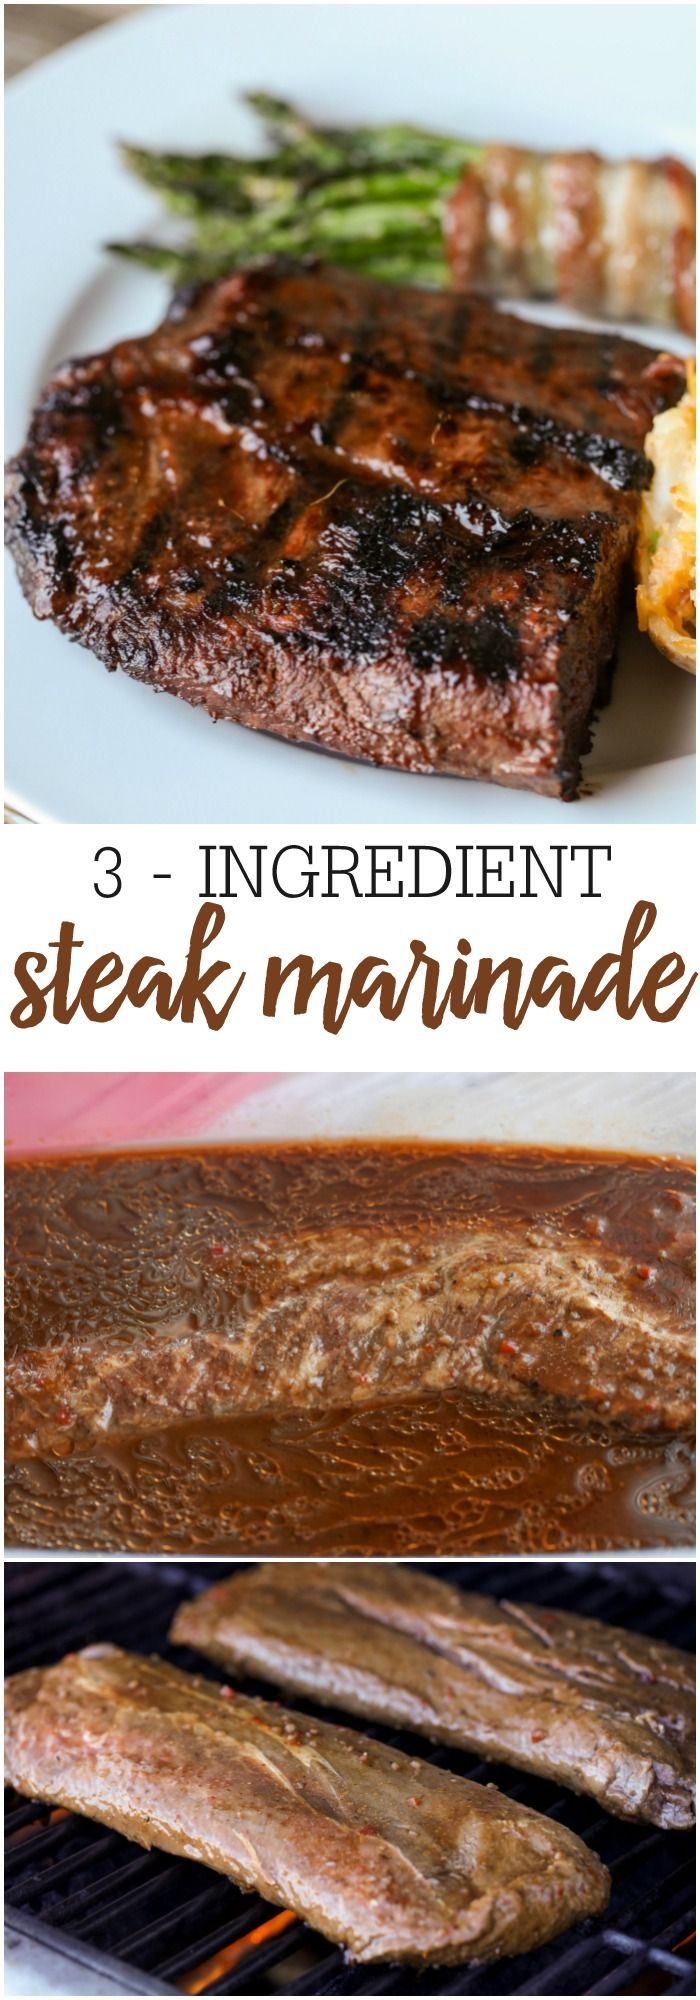 Easy 3-Ingredient Steak Marinade Recipe | Lil' Luna